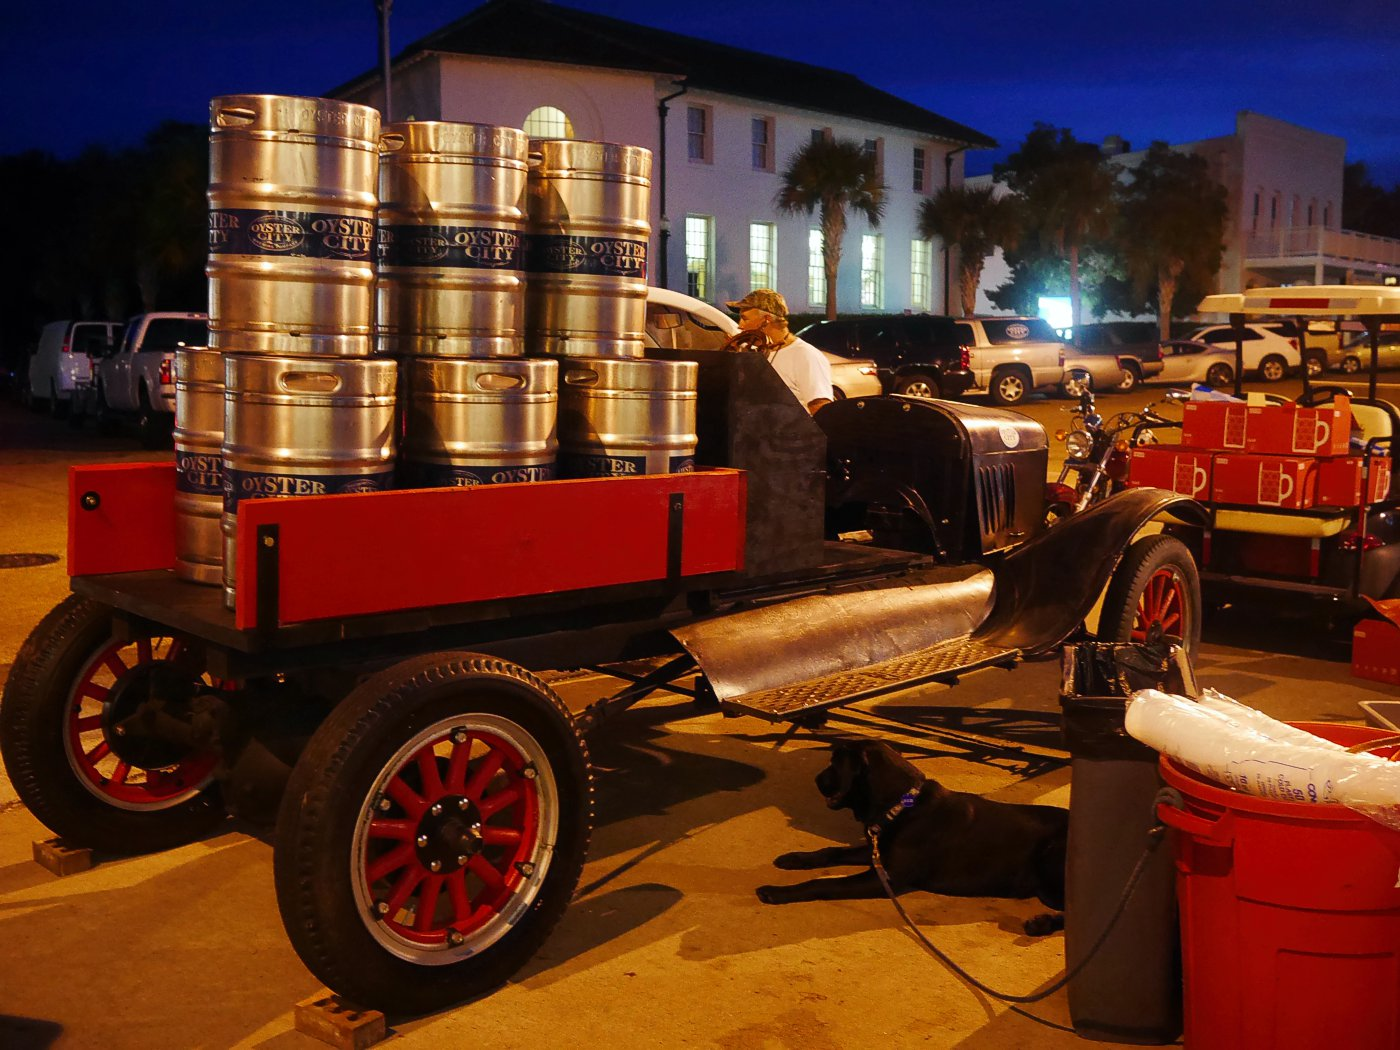 Oyster City Brewing Company, Apalachicola local Craft microbrewery serving up their brew during a town party